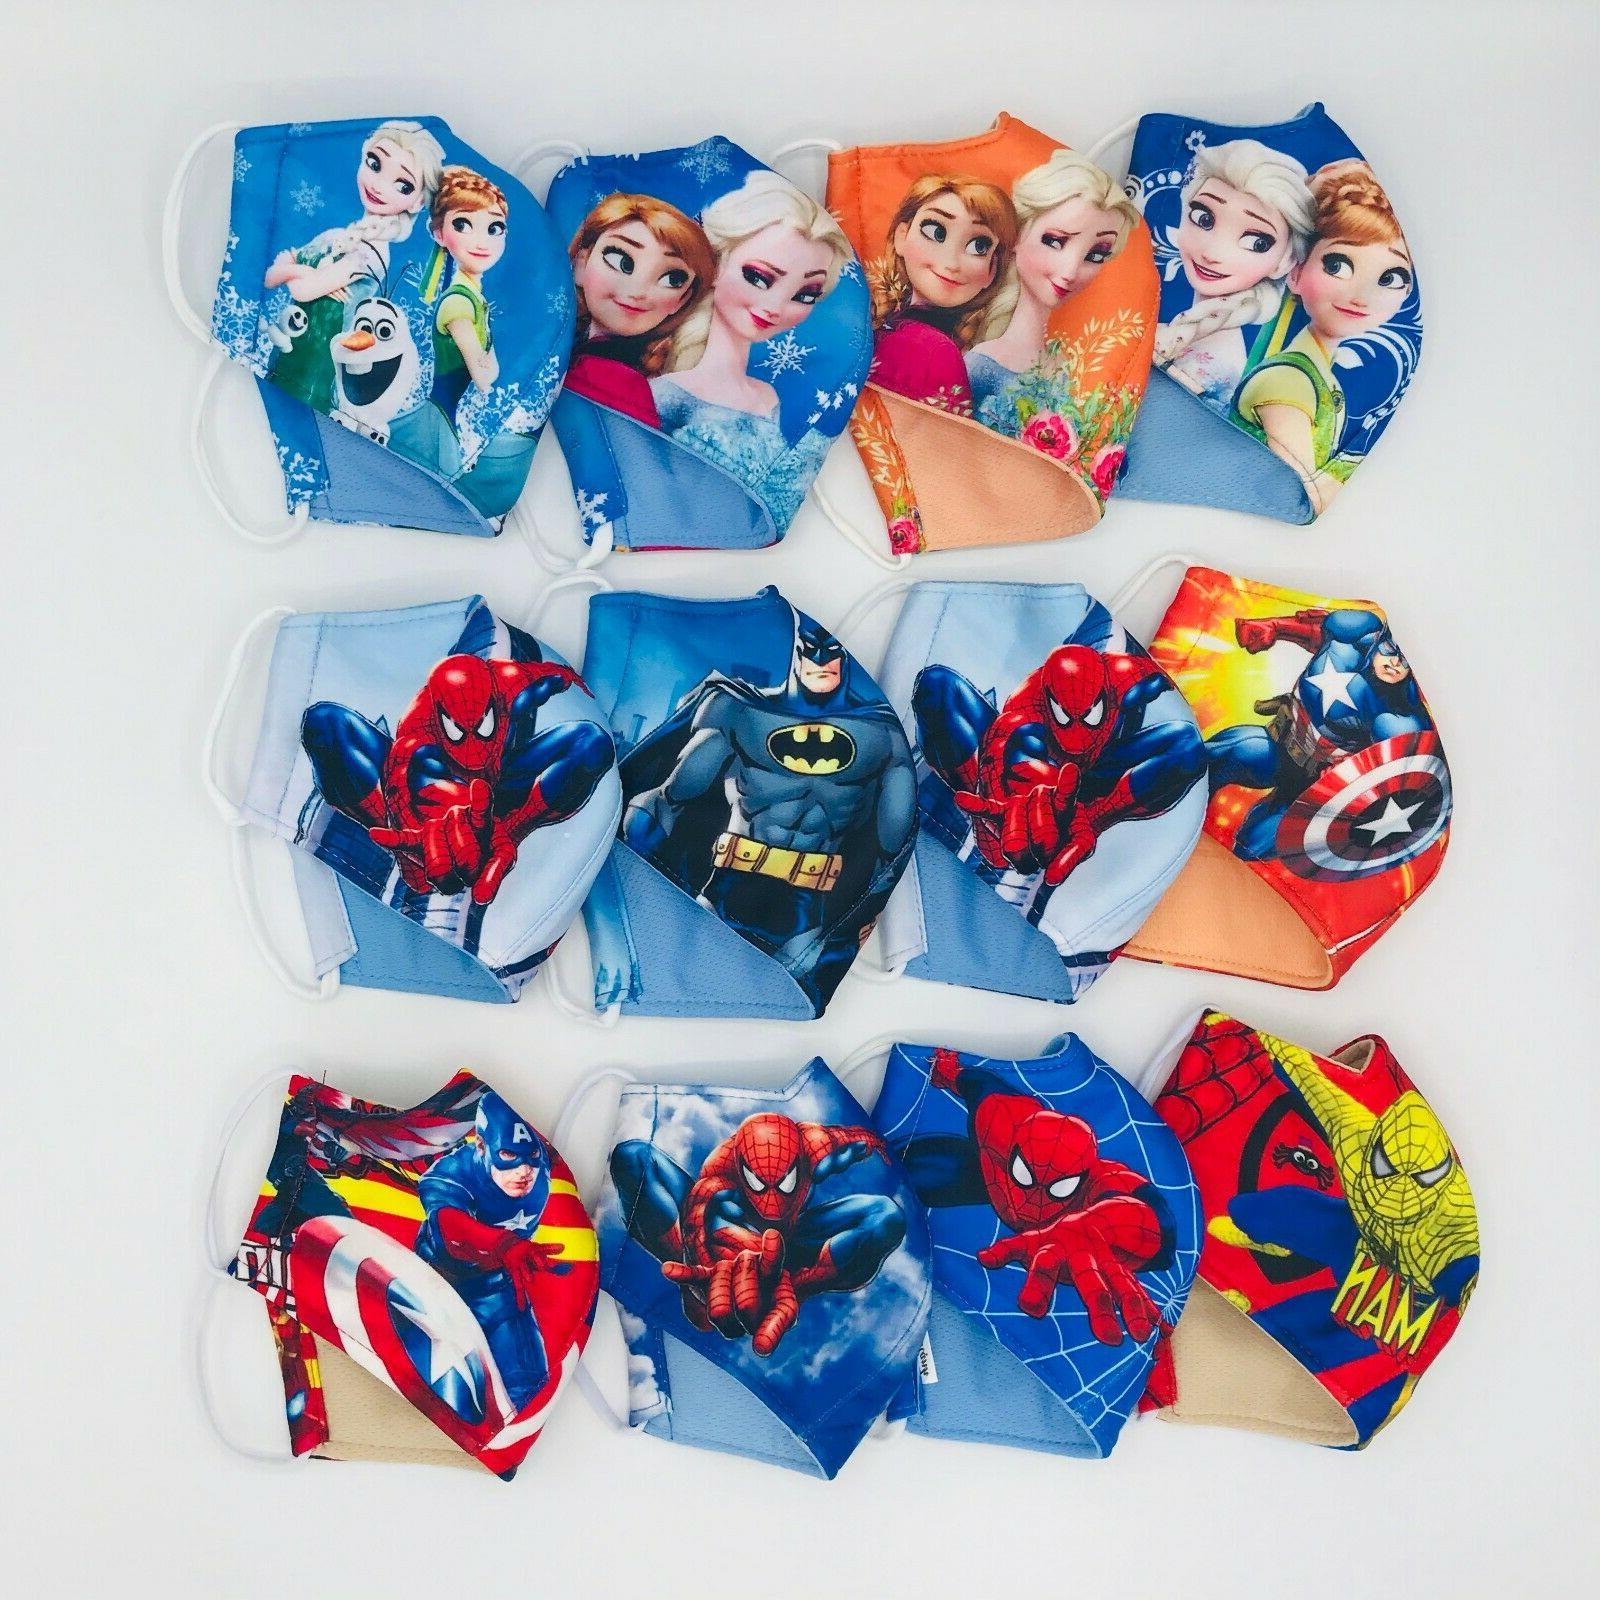 2 PACK Mask, HERO/PRINCESS to 10 Polyester Fabric 3-Fly Washable